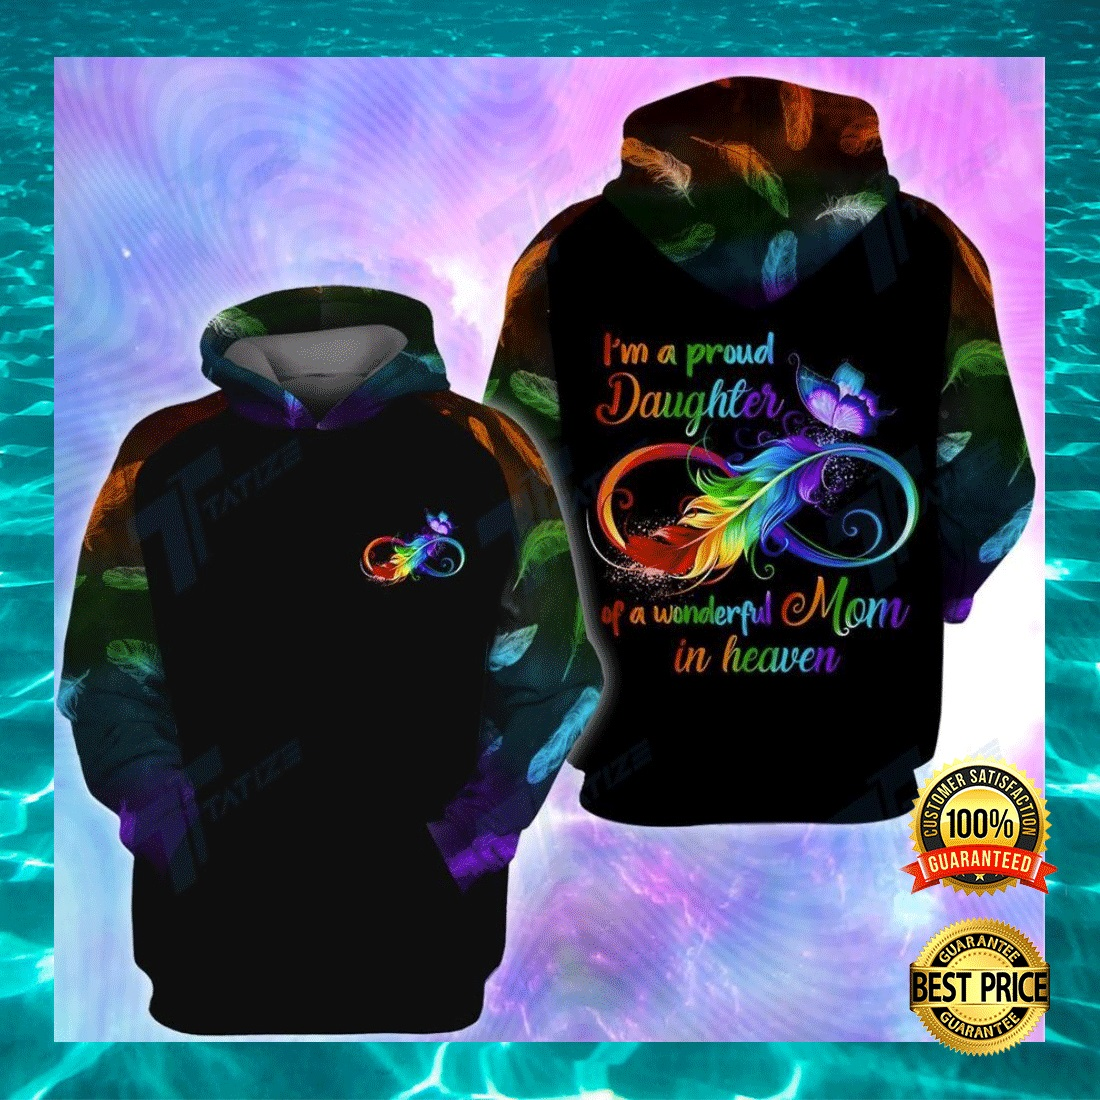 I'M A PROUD DAUGHTER OF A WONDERFUL MOM IN HEAVEN ALL OVER PRINTED 3D HOODIE 5